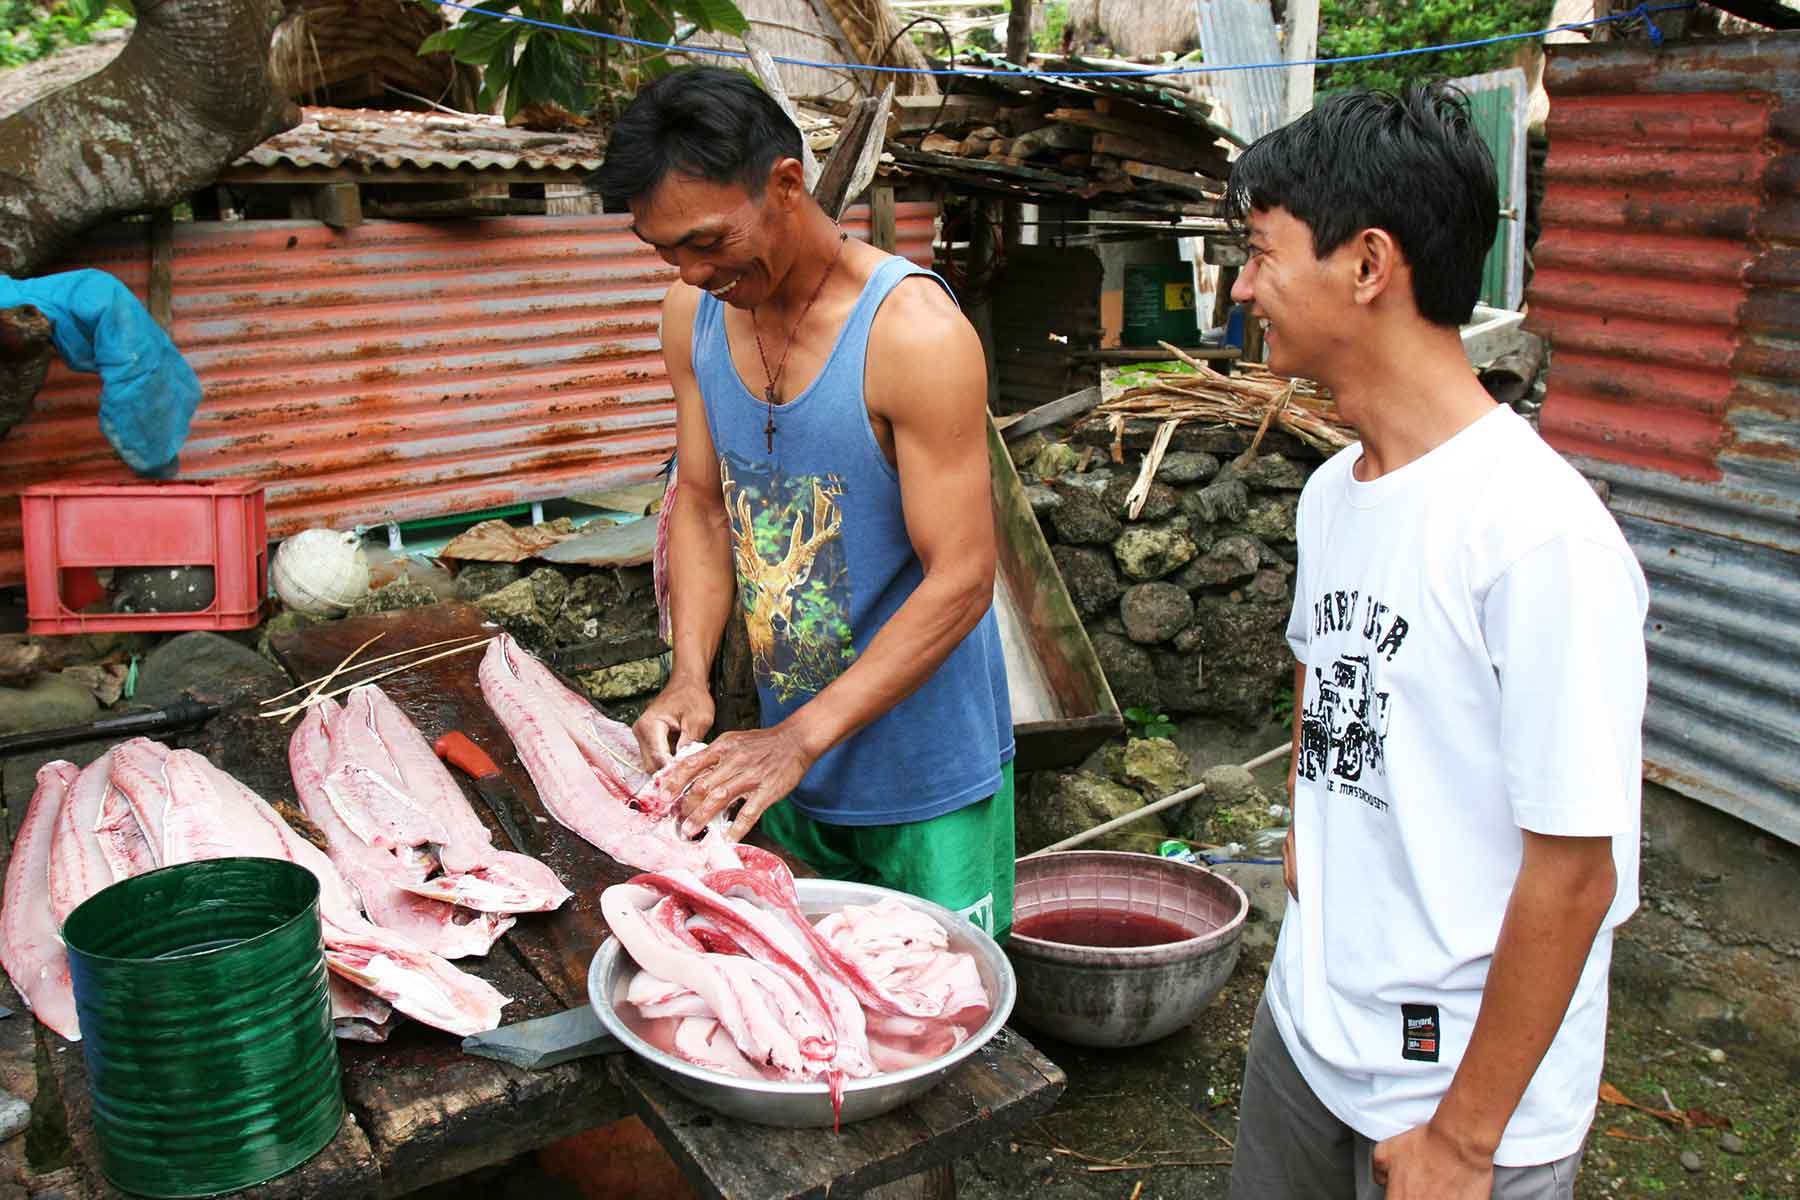 Ivatan Fisherman drying fish - Batanes Islands Cultural Atlas - ECAI - Dr Steven Andrew Martin - Philippines research